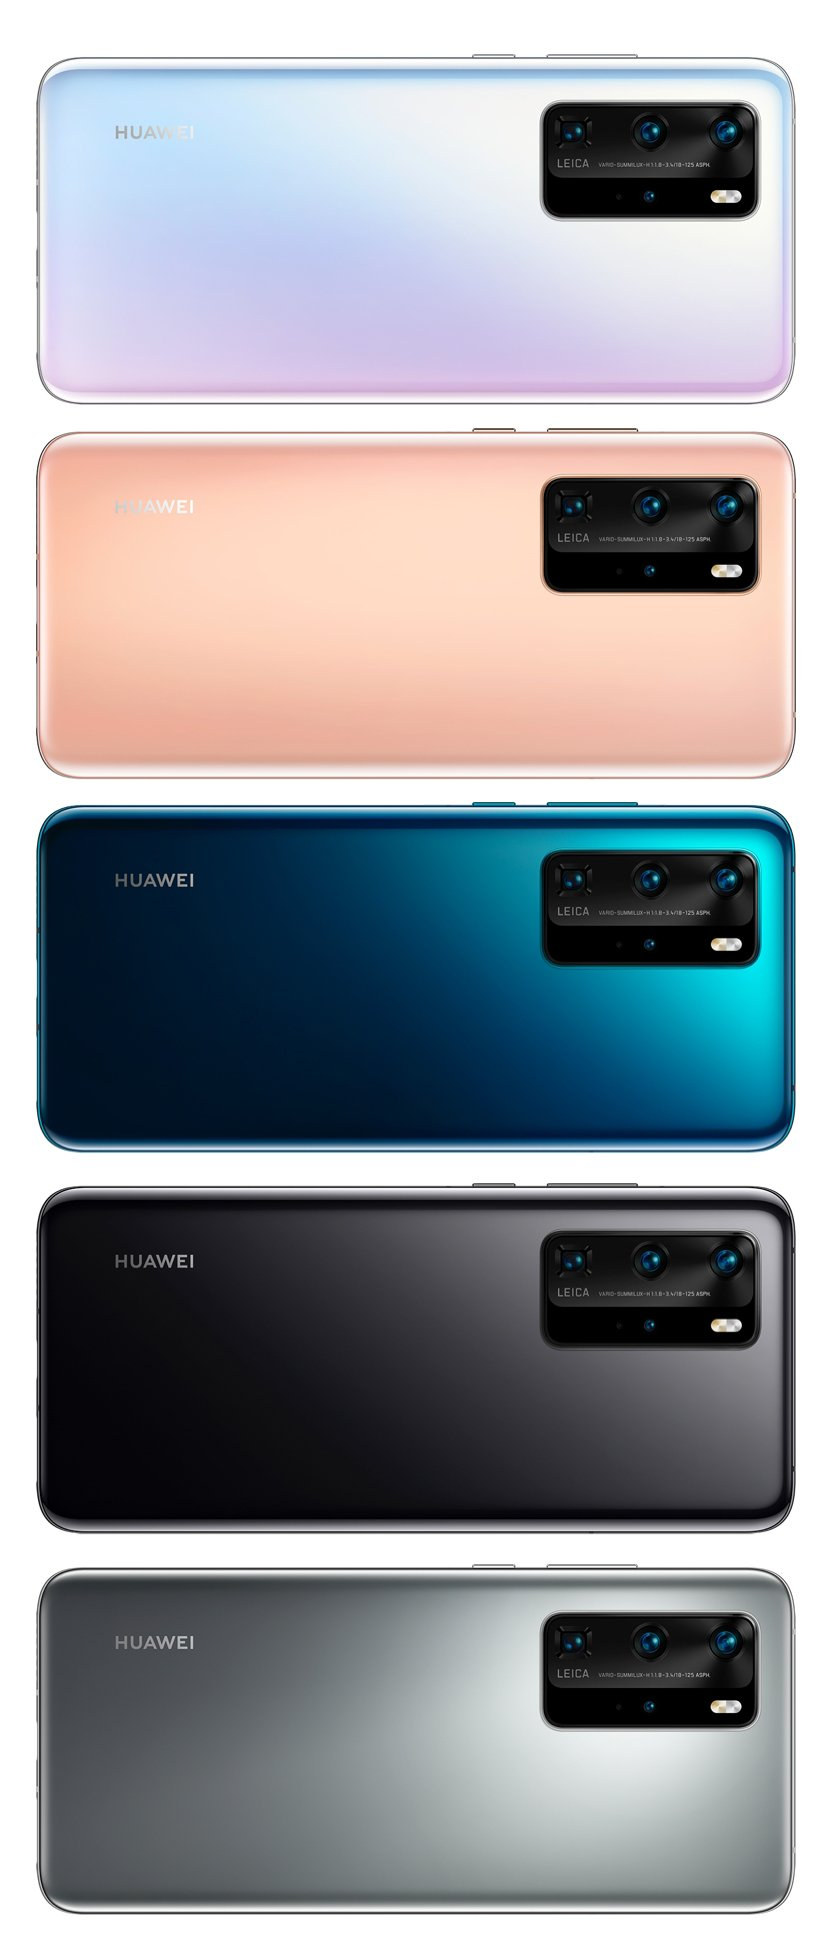 Huawei P40 Pro Caracteristicas E Especificacoes Analise Opinioes Phonesdata